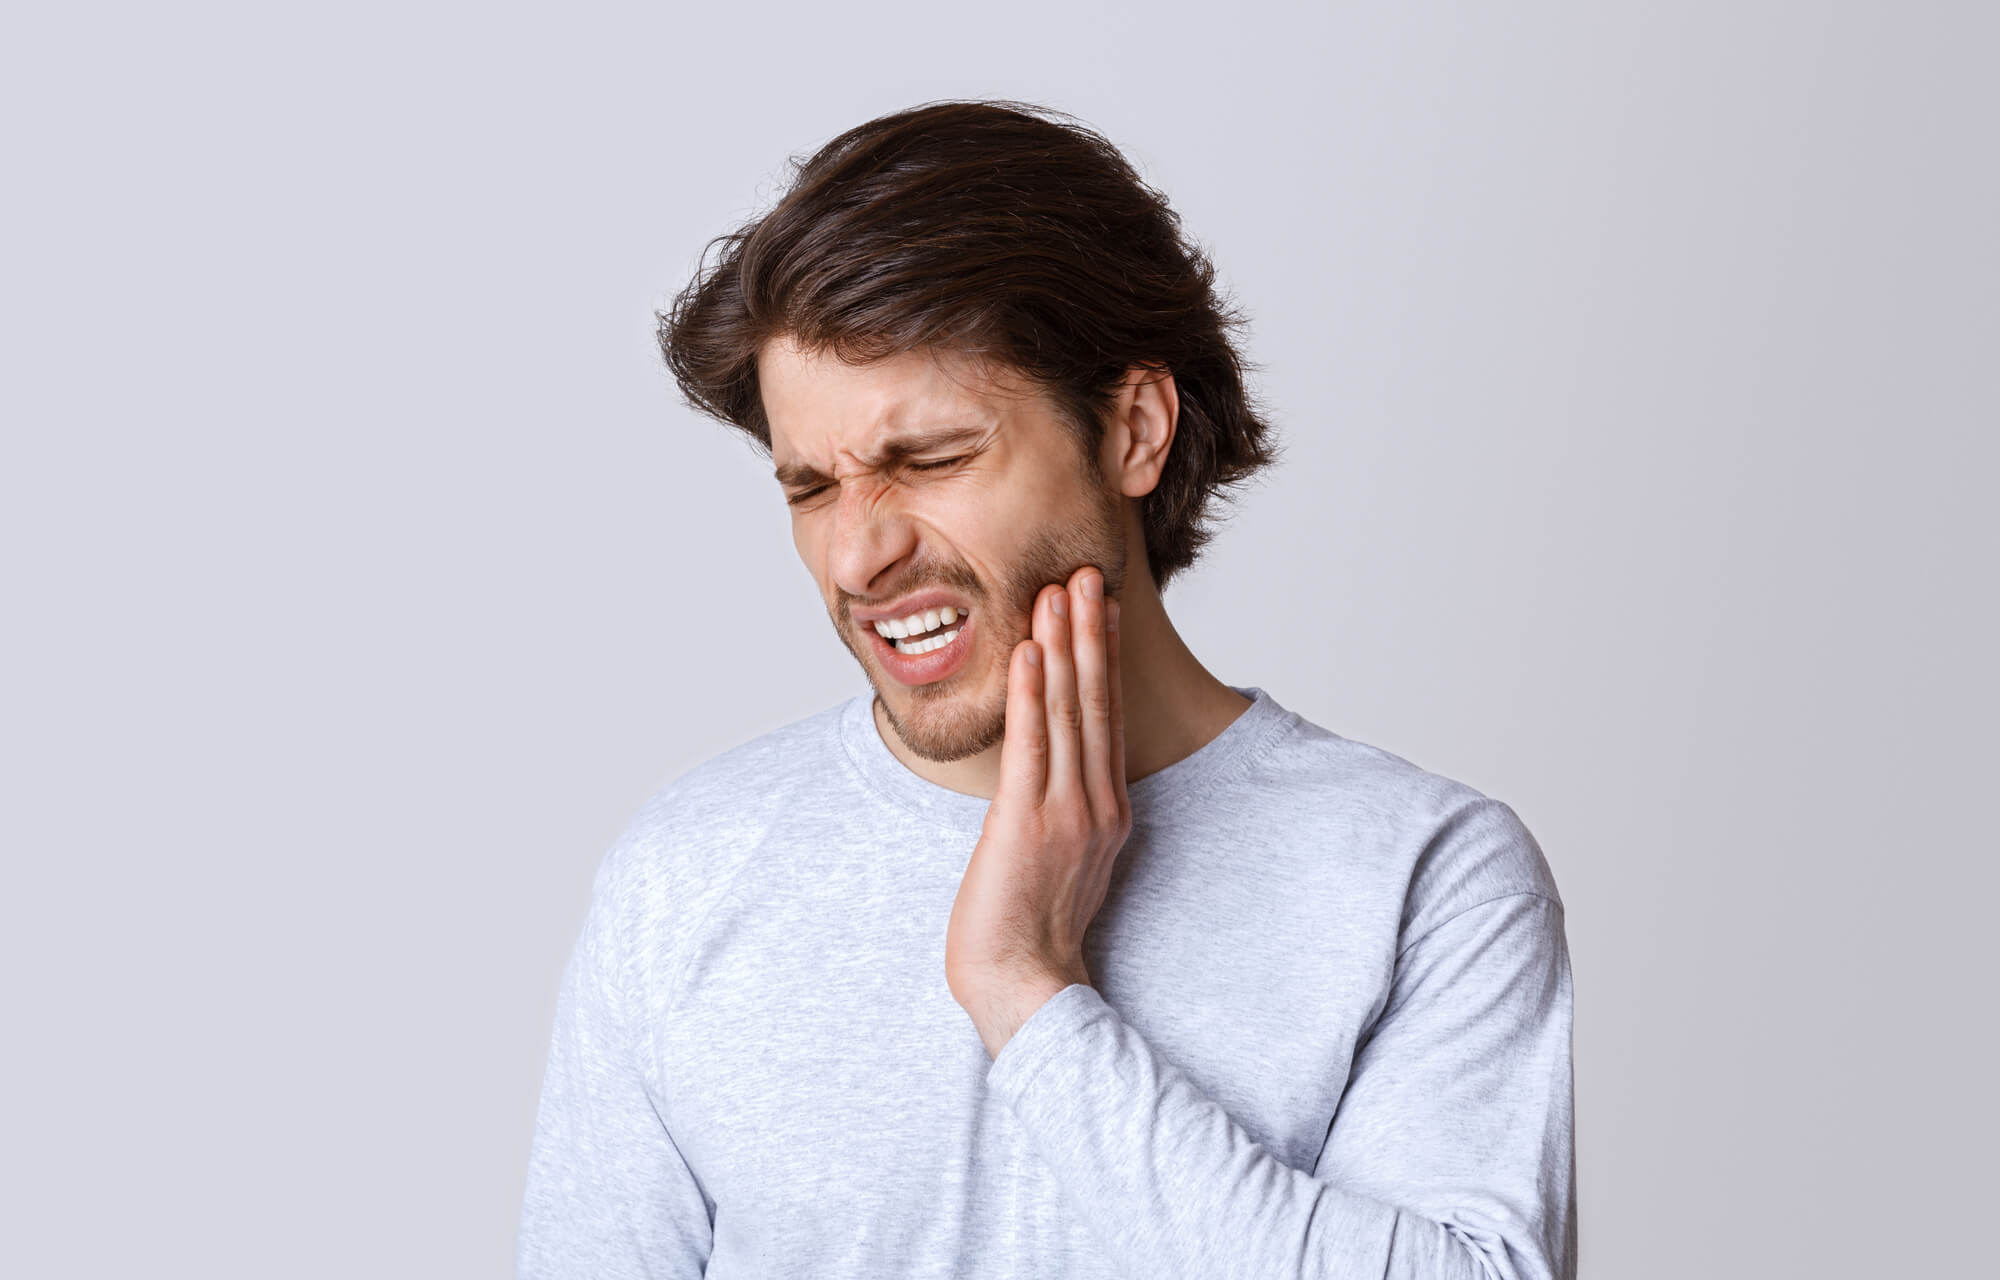 Man feels pain and needs Emergency dentistry in 33317